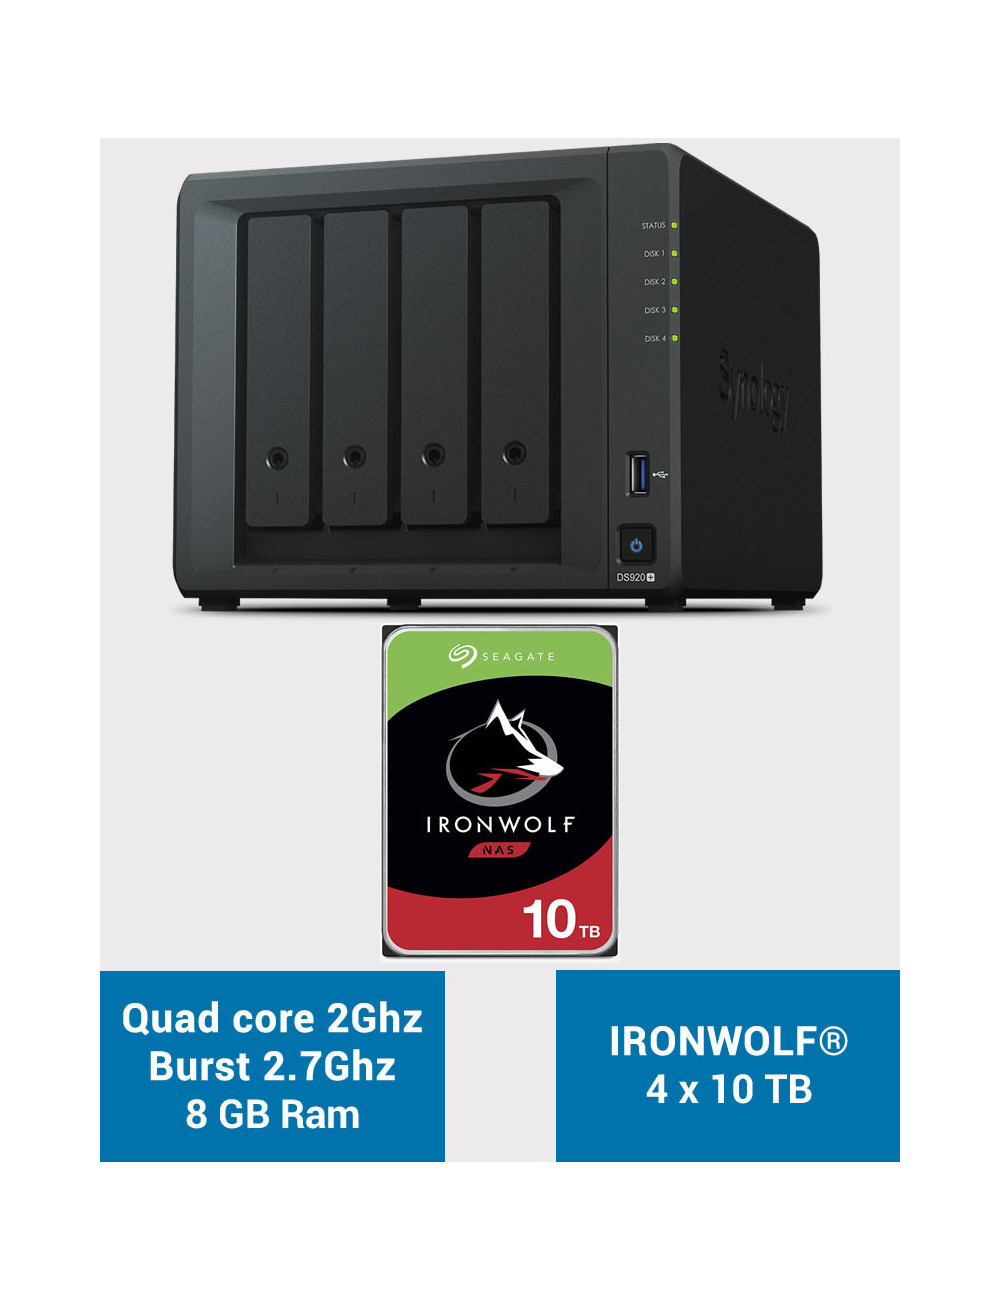 Synology DS920+ 8GB Serveur NAS IRONWOLF 40To (4x10To)